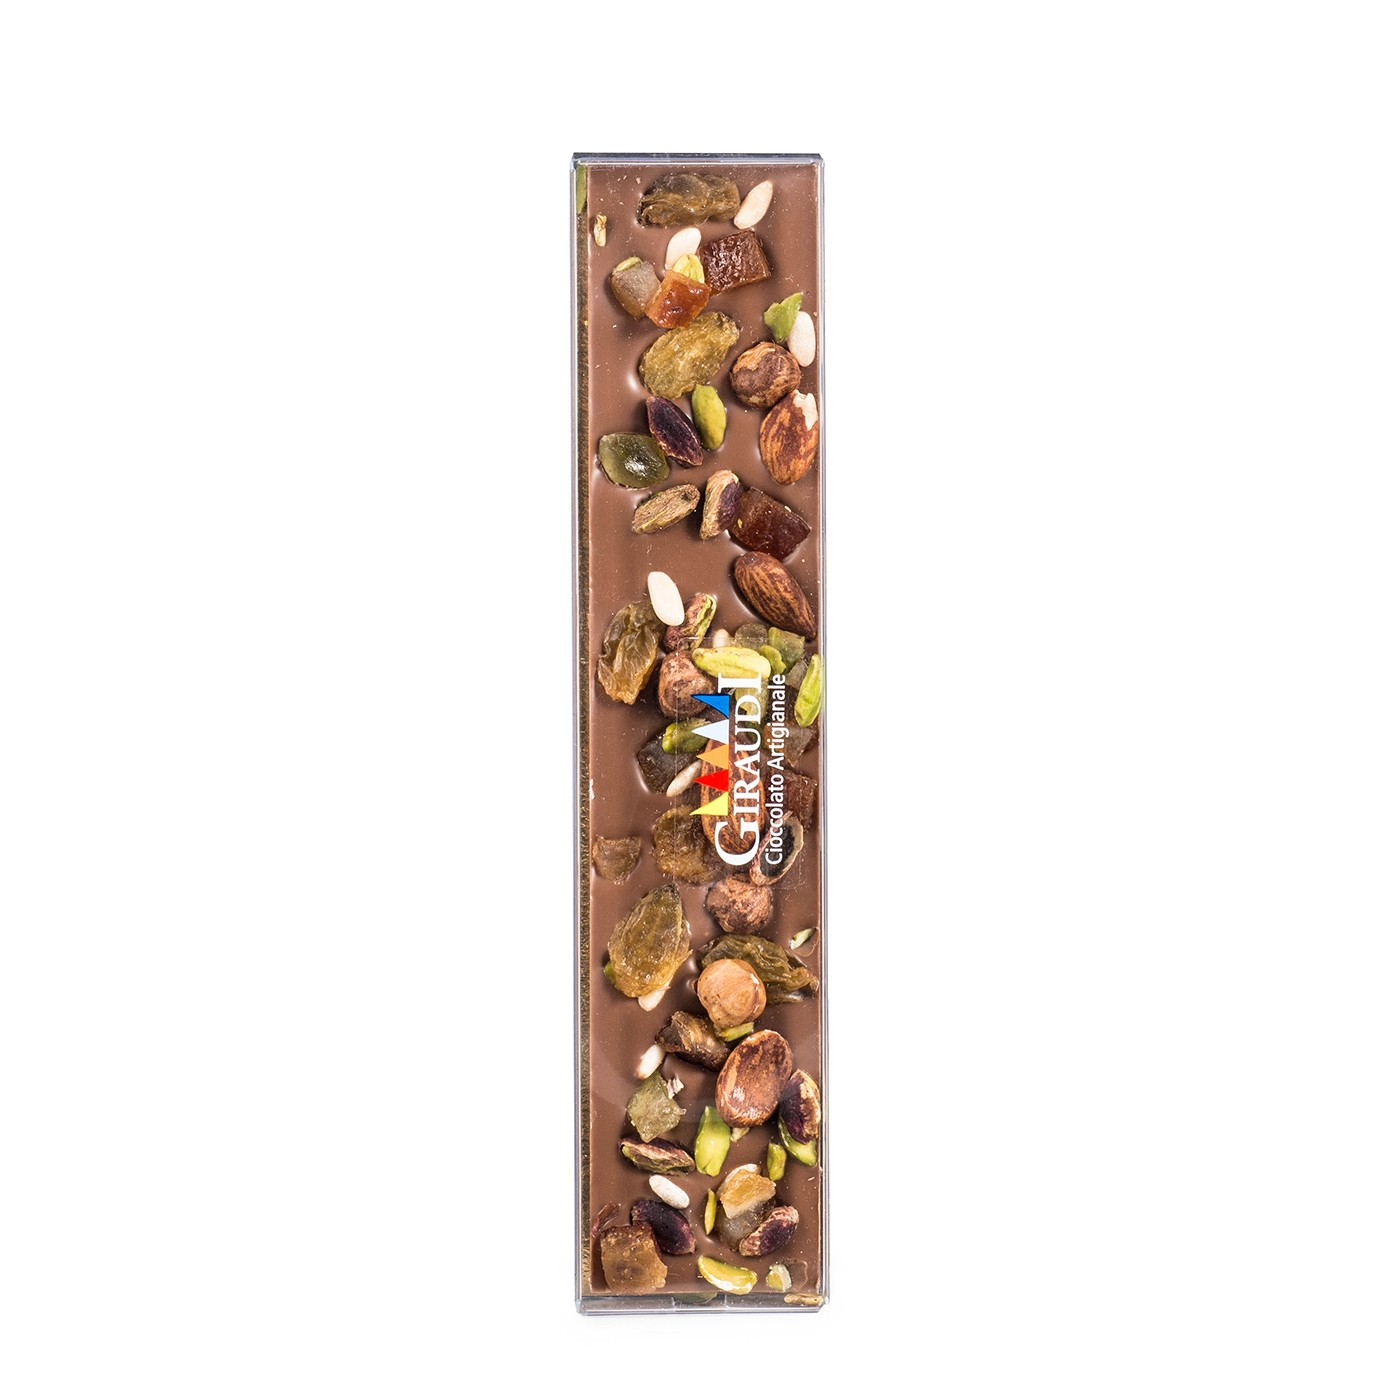 Milk Chocolate Bar with Nuts and Candied Fruit 4.23 oz